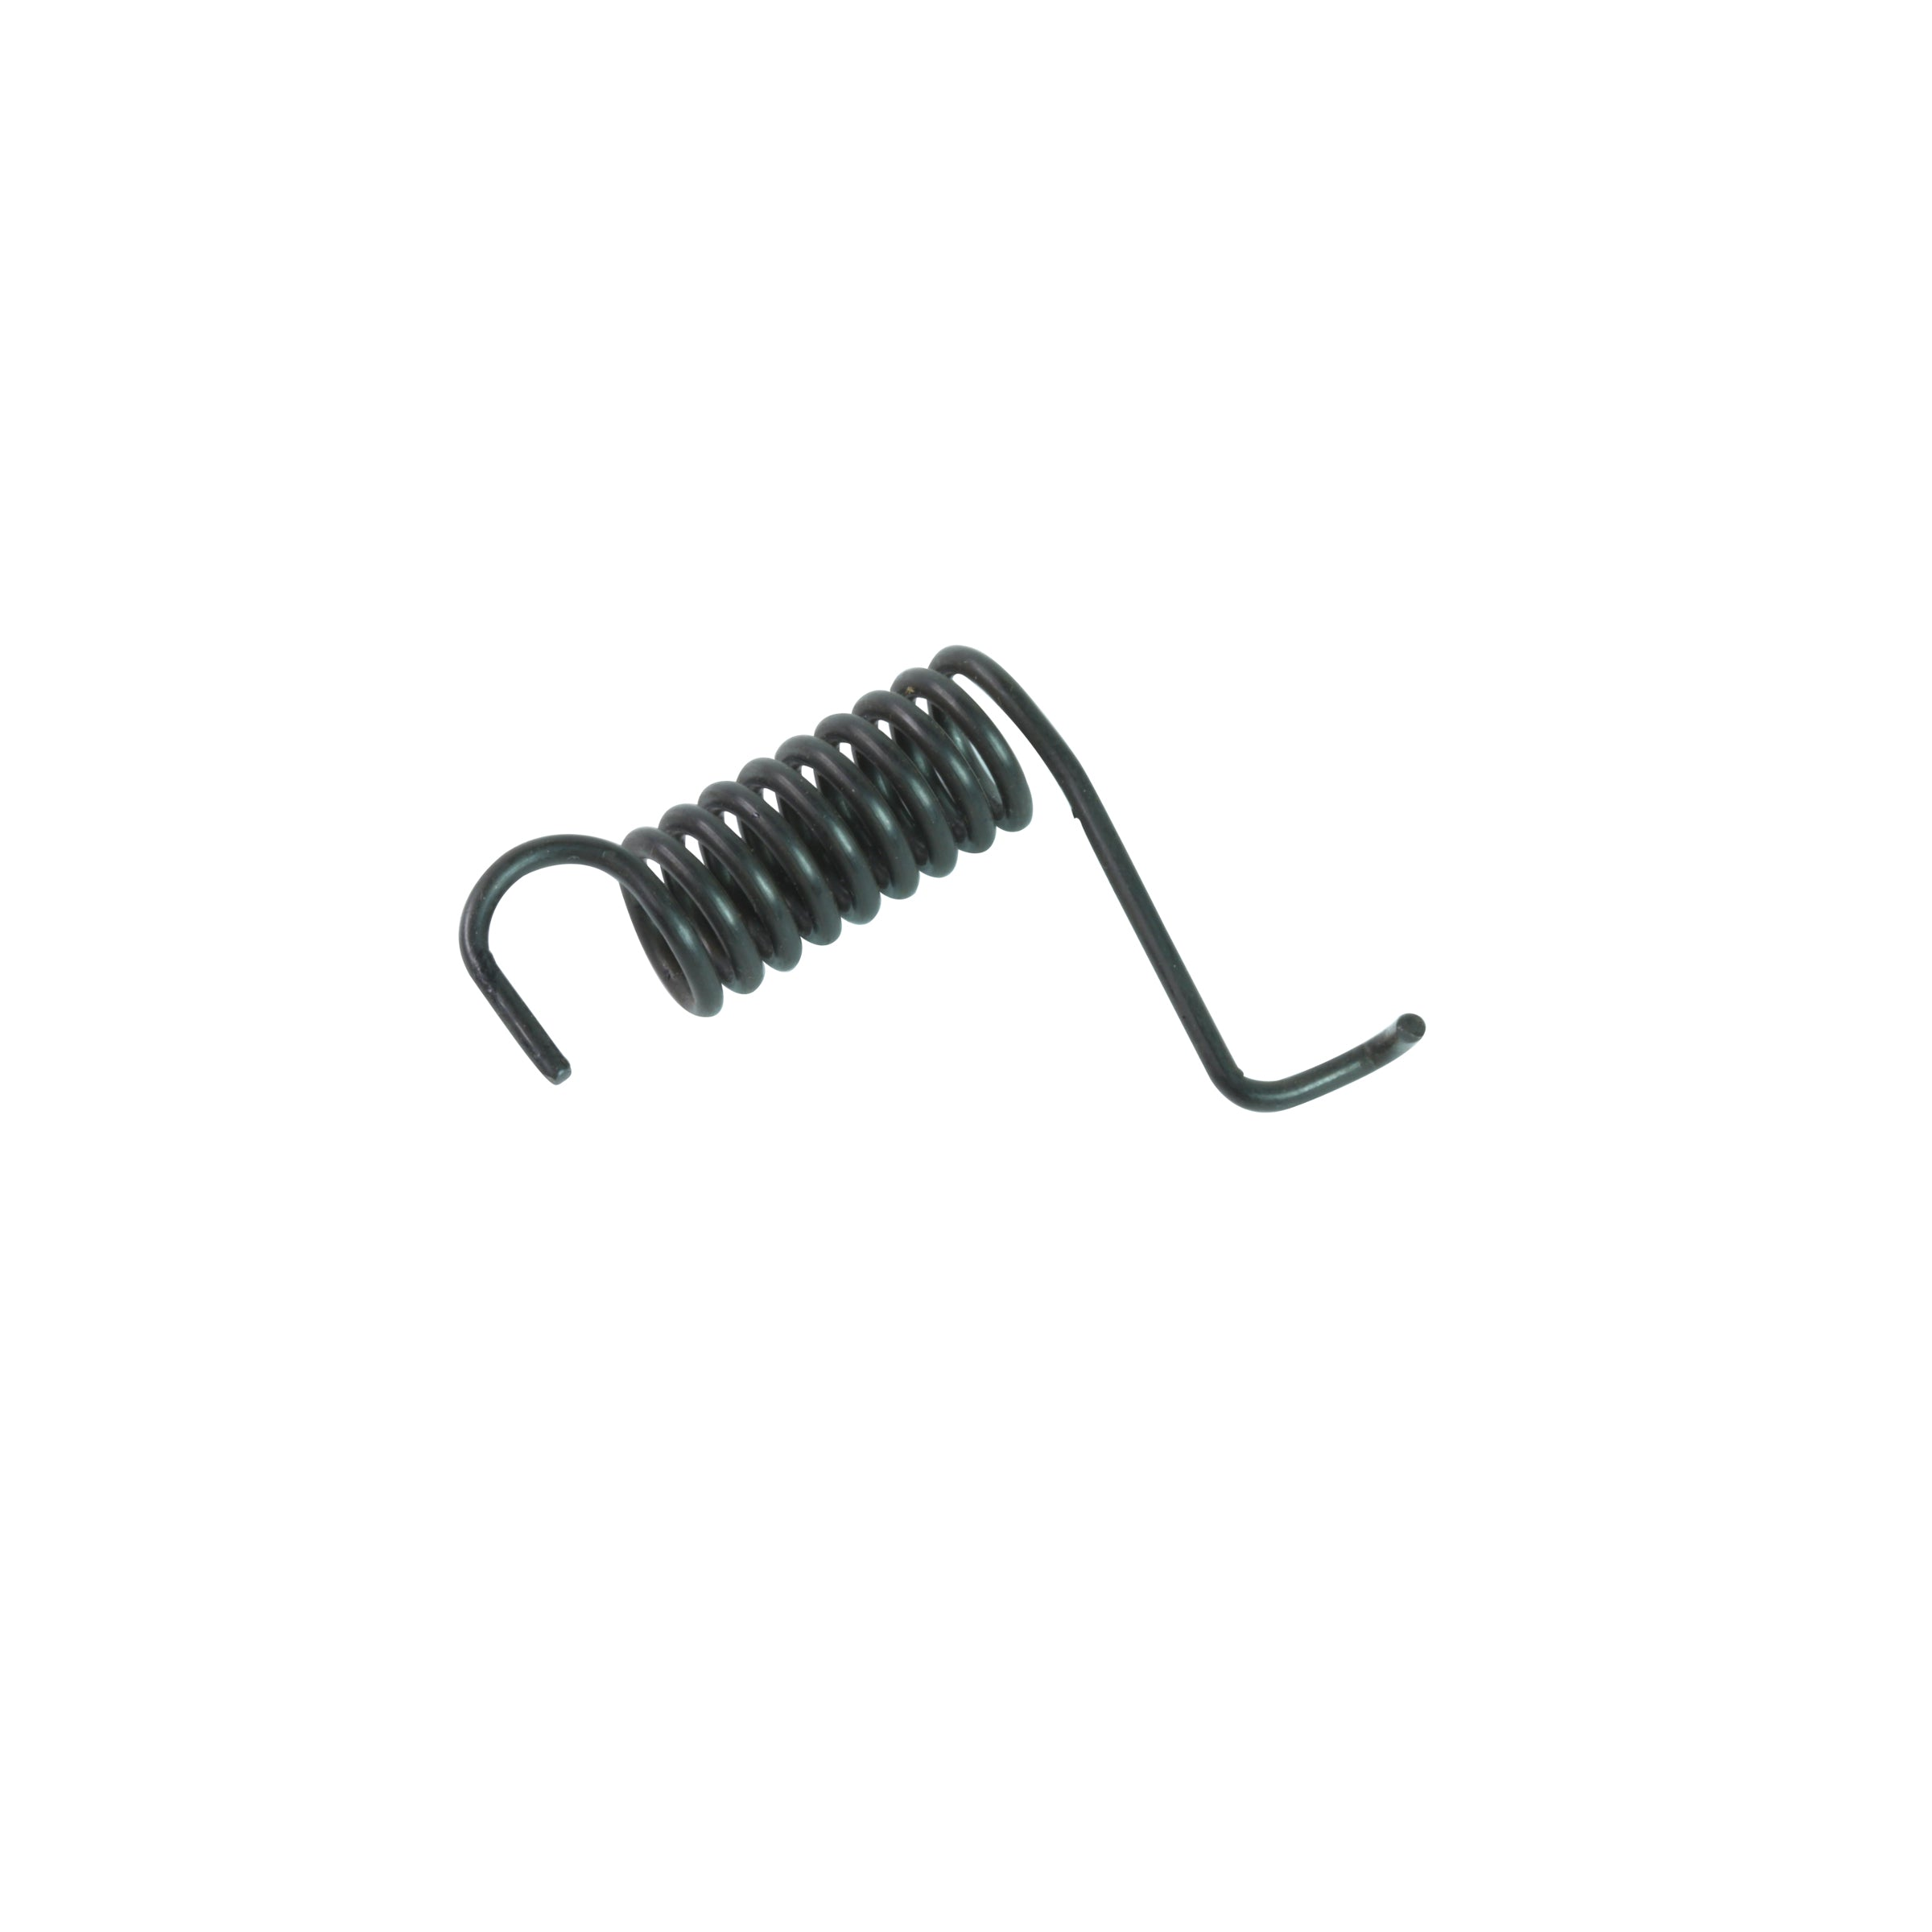 Accelerator Spring on Firewall • 1935-48 Ford